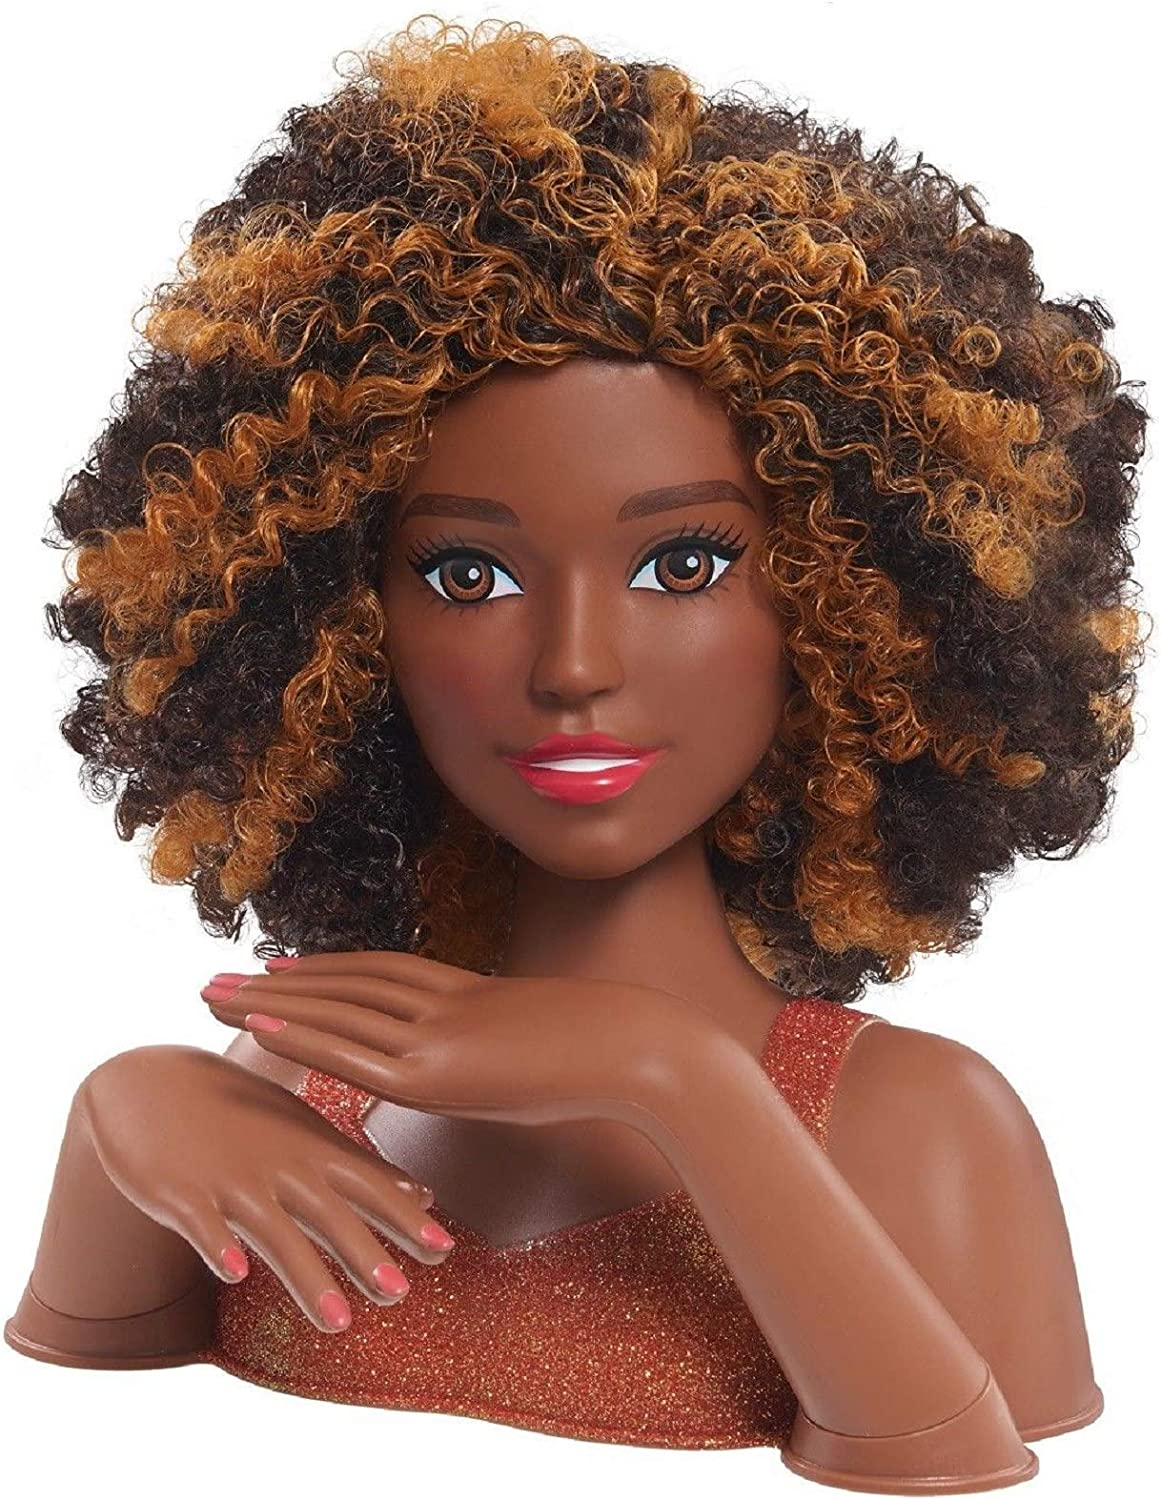 Amazon Com Barbie Deluxe Styling Head Color And Style Black Curly Hair Electronics